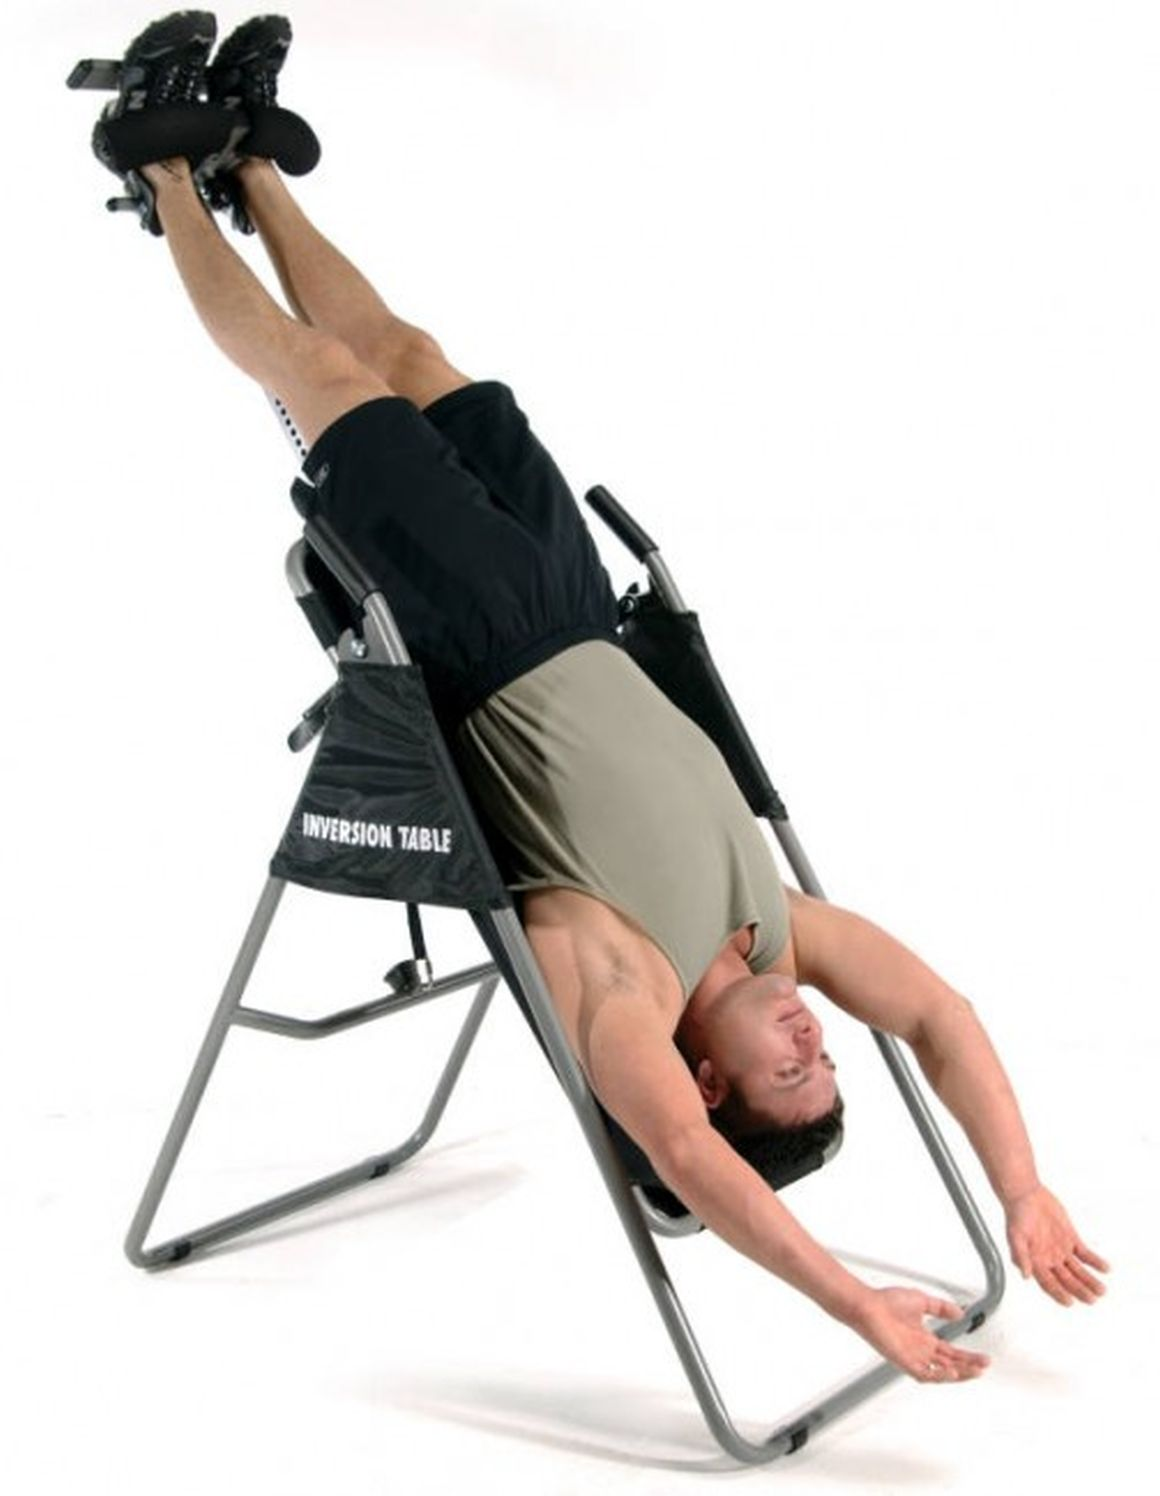 Dystonia living self care tools for relieving pain for 1201 back therapy inversion table